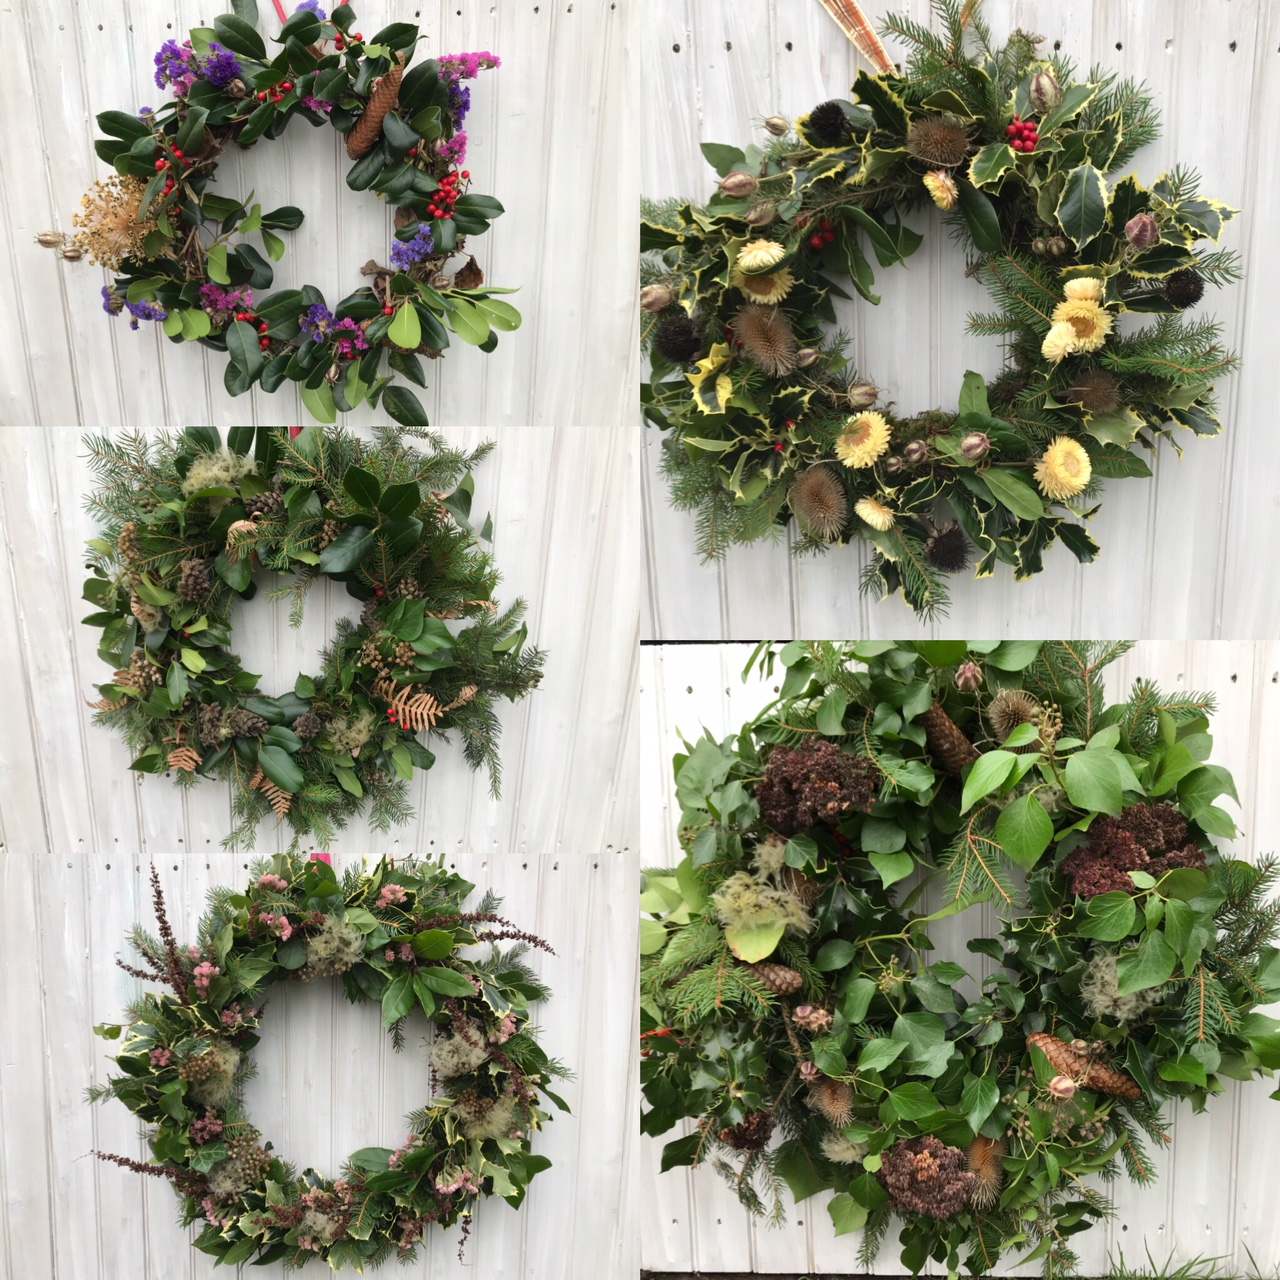 Just a few of the wreaths created during our winter workshops